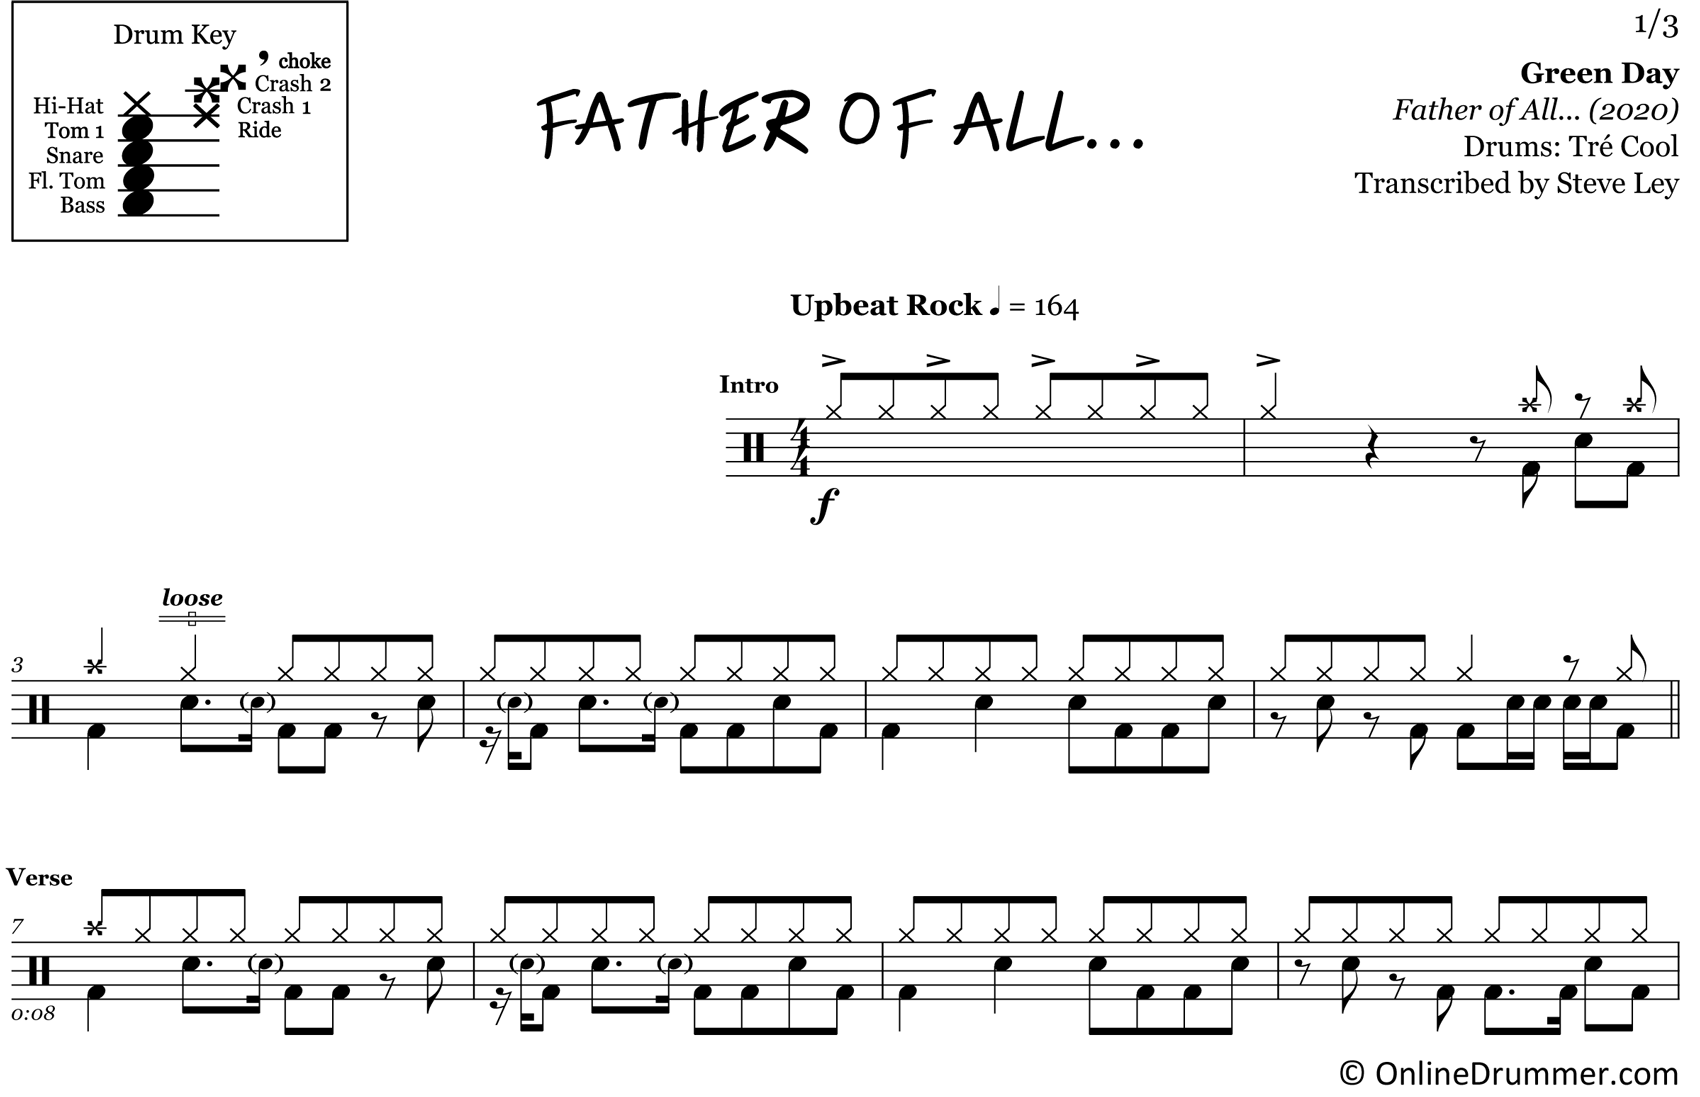 Father of All - Green Day - Drum Sheet Music